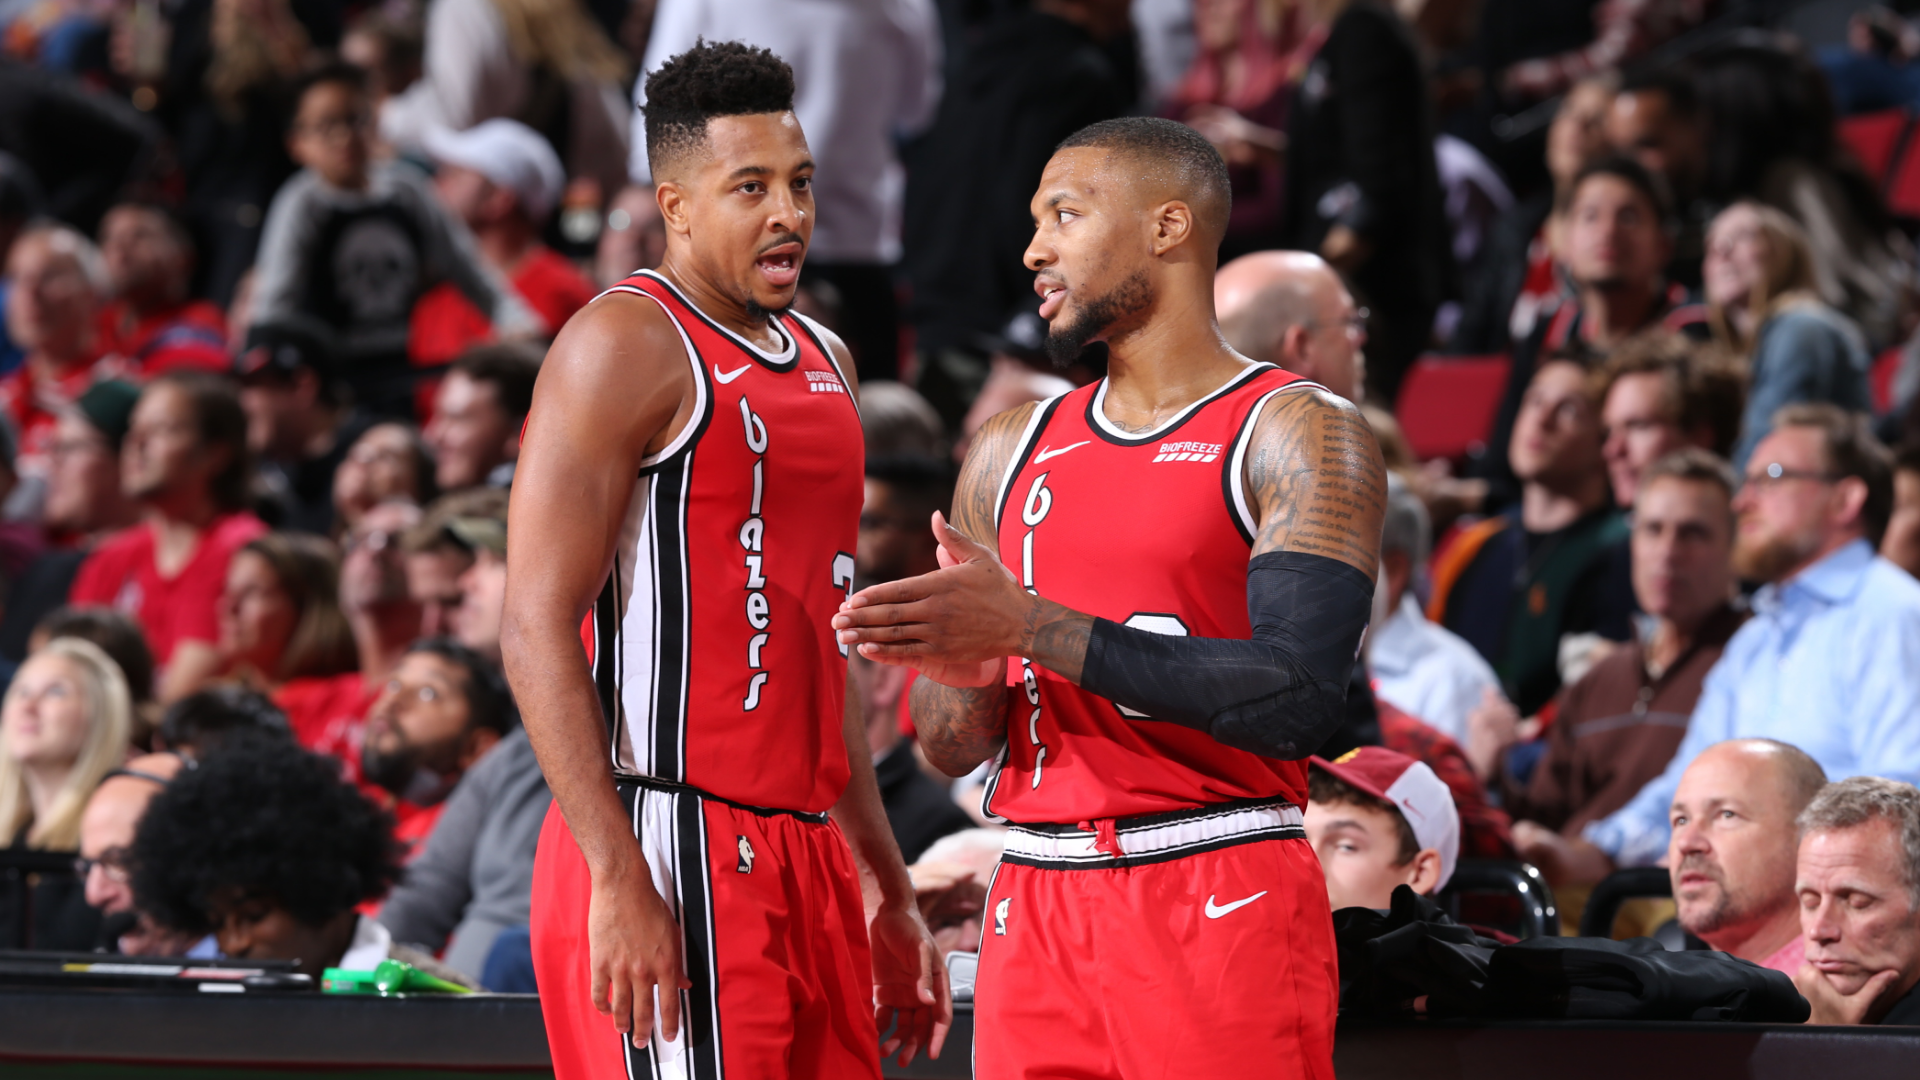 CJ McCollum and Damian Lillard